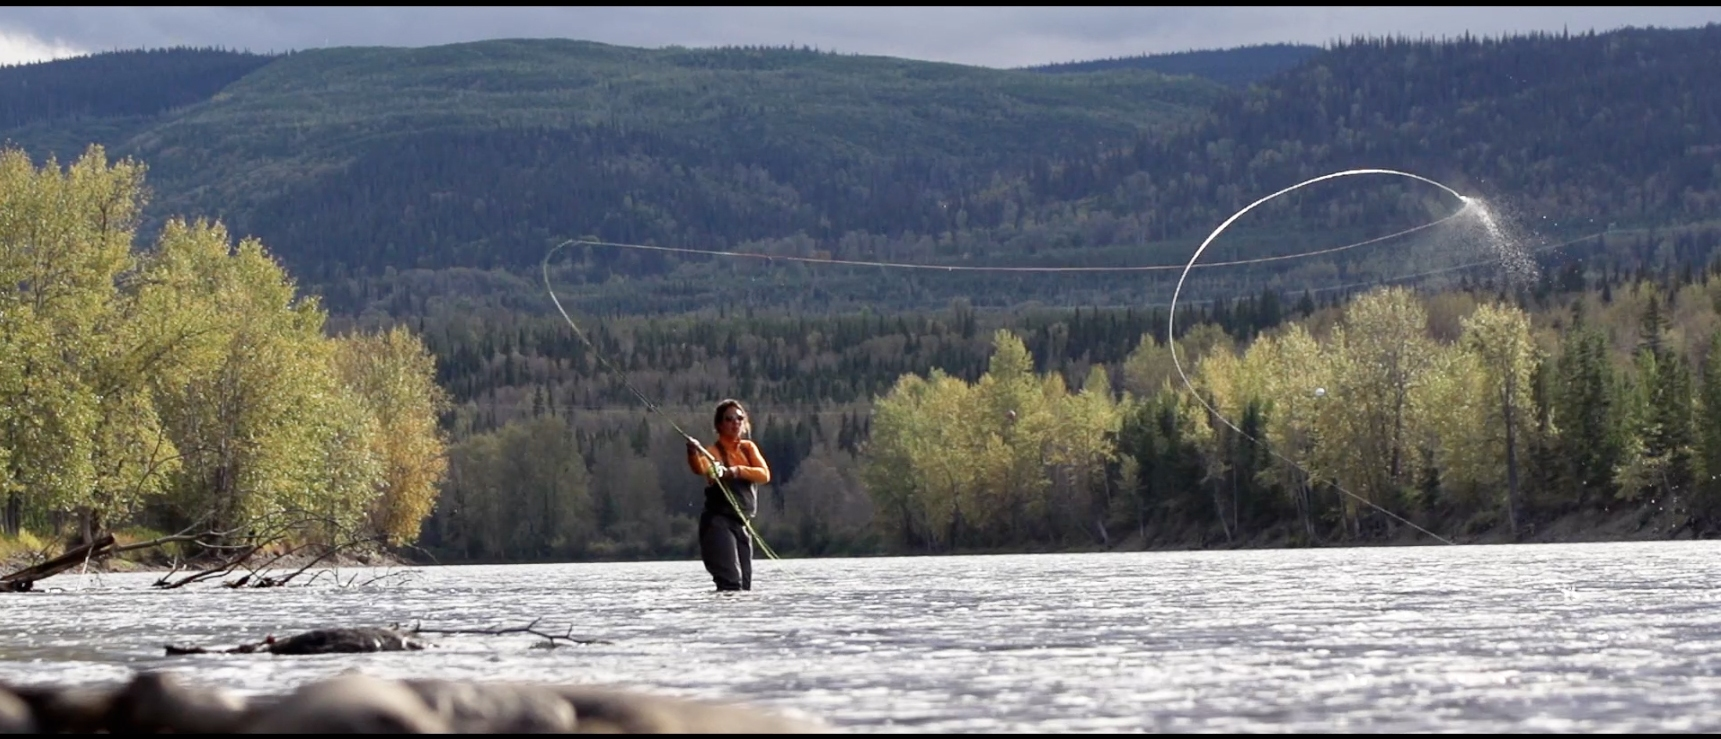 Fly fishing film festival at the bing the spokesman review for International fly fishing film festival